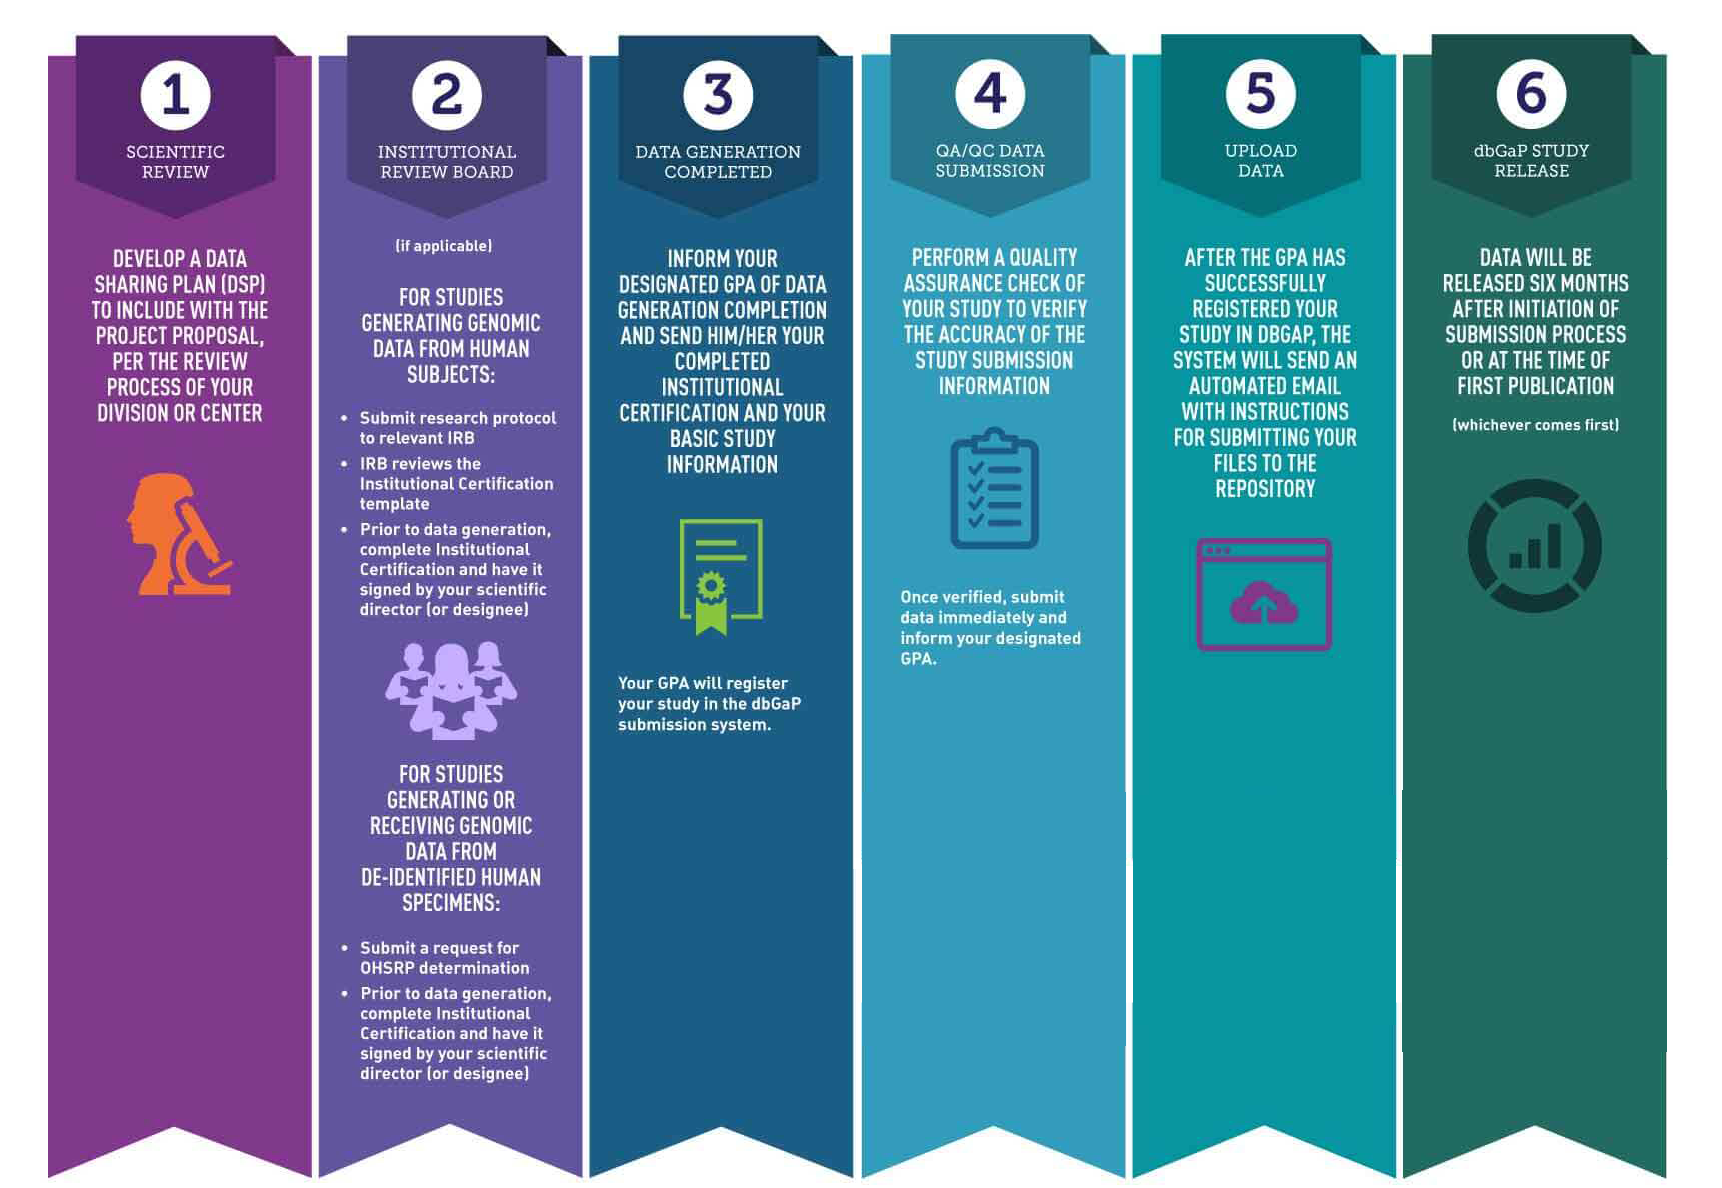 Infographic displaying 6 steps NCI intramural investigators must take to submit data to NCI repositories. From the top left, going to the right, the steps are: 1. Prepare and submit a data sharing plan (submit the plan with your project proprosal). 2. Submit Institutional certification with appropriate signatures to Program Officer or GPA. For studies generating genomic data from human subjects, submit your research protocl to the IRB who will review the institutional certification. Before you generate data